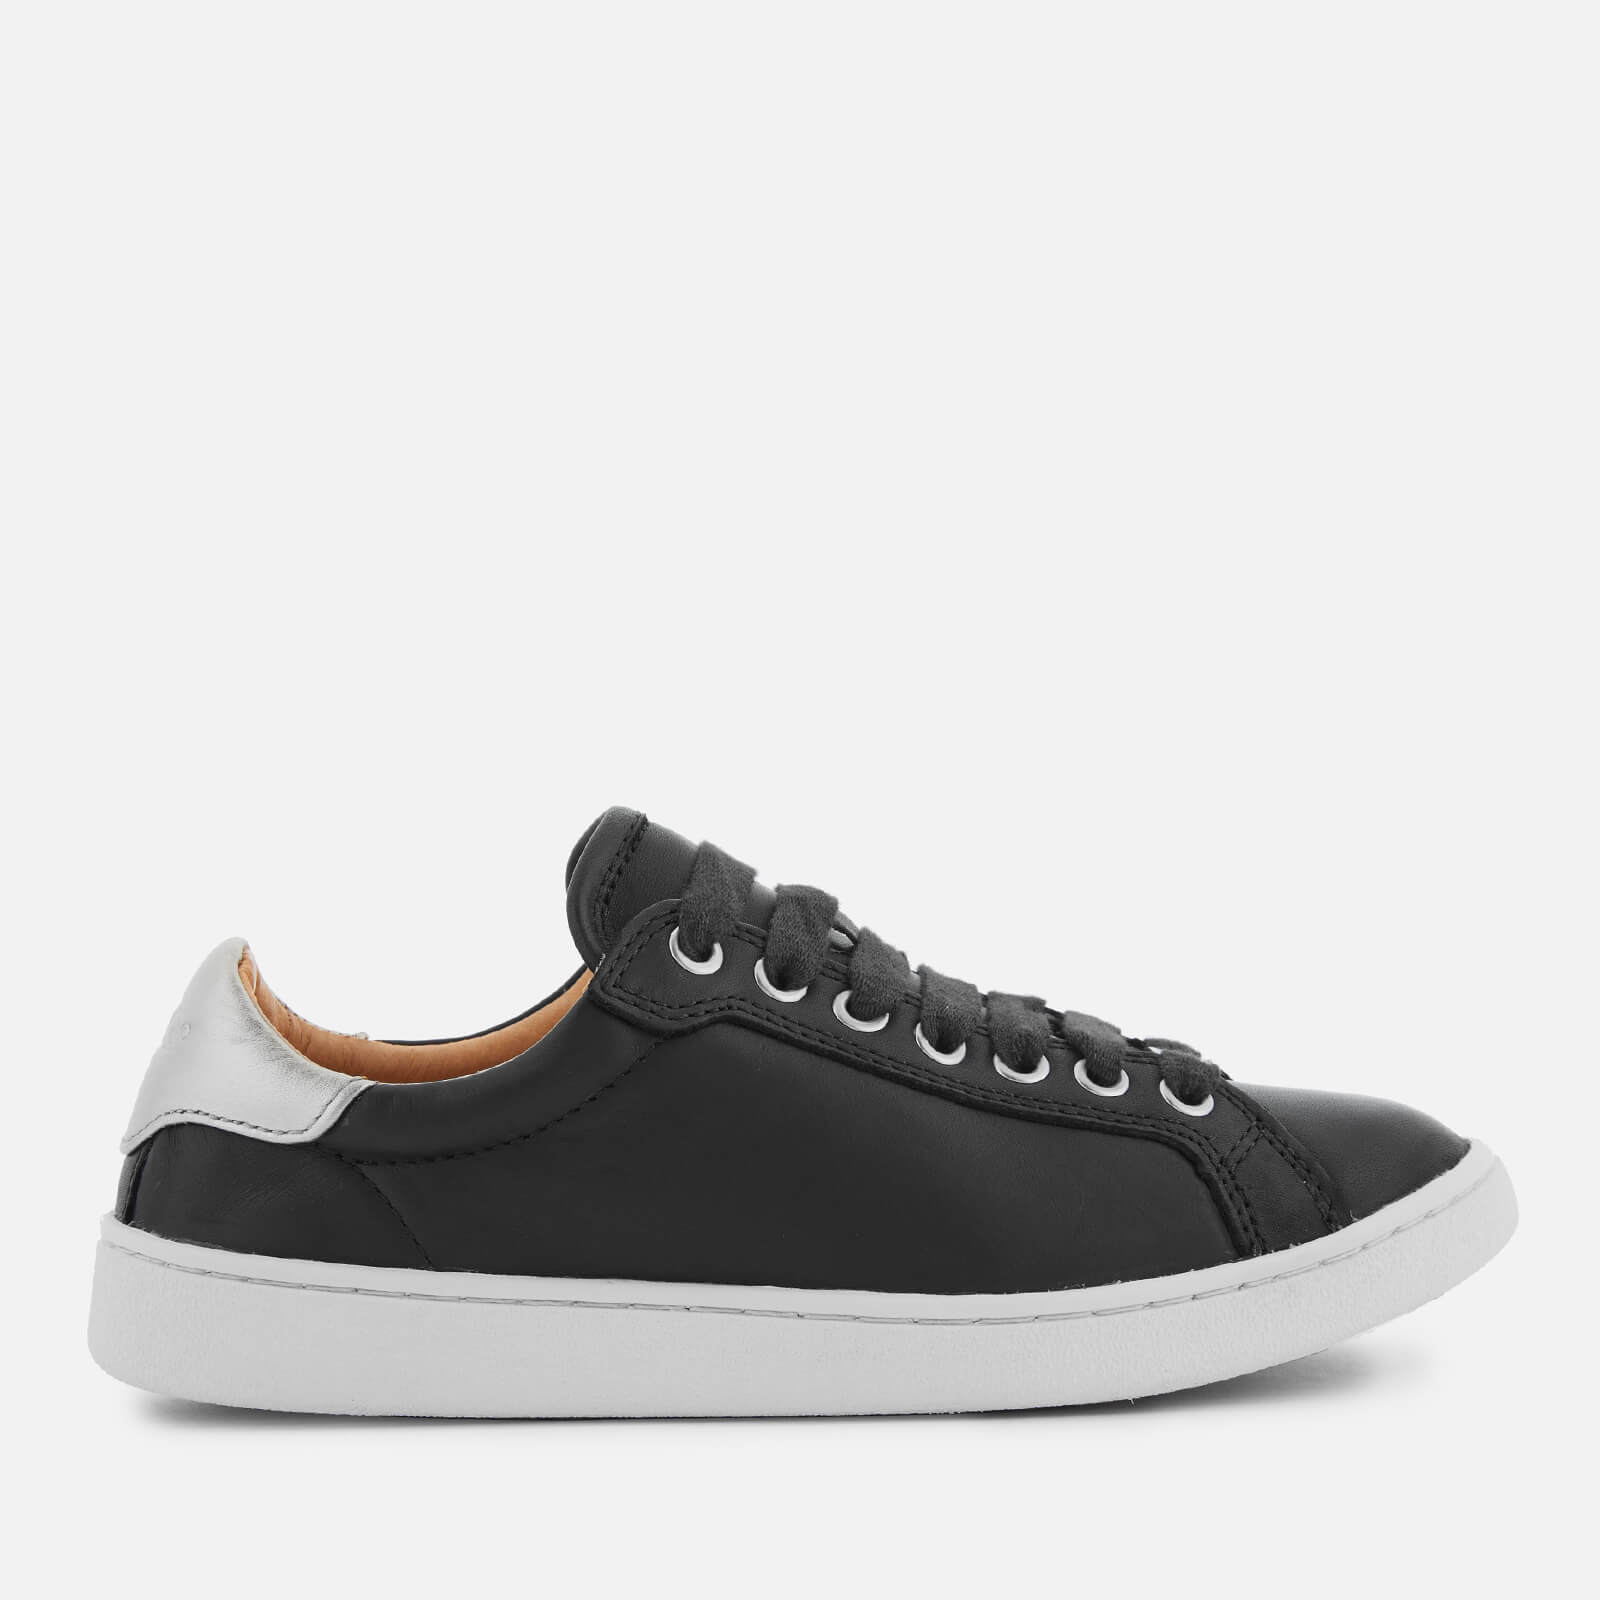 97c3706b86a8 UGG Women s Milo Full Grain Leather Low Top Trainers - Black - Free UK  Delivery over £50